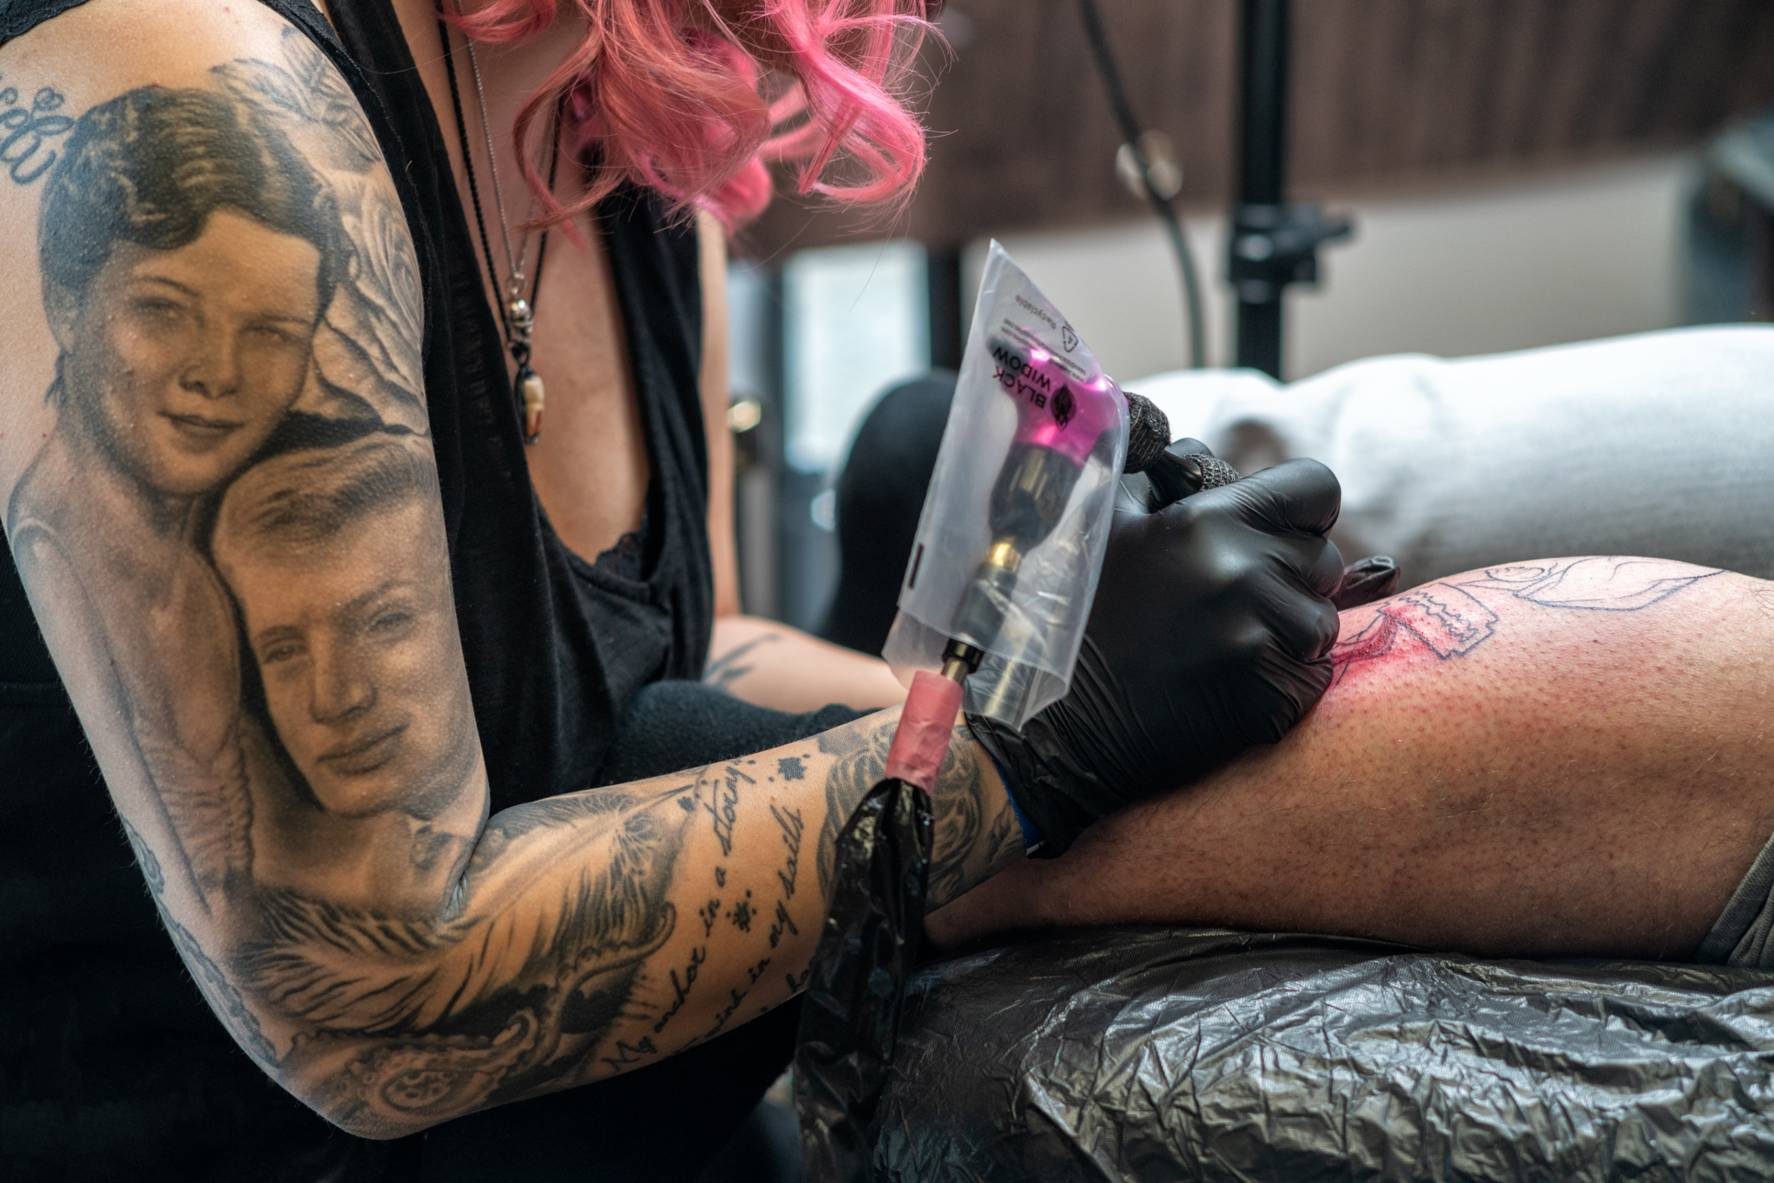 FA_Out_R2_Tattoo_Titisee_2019_04